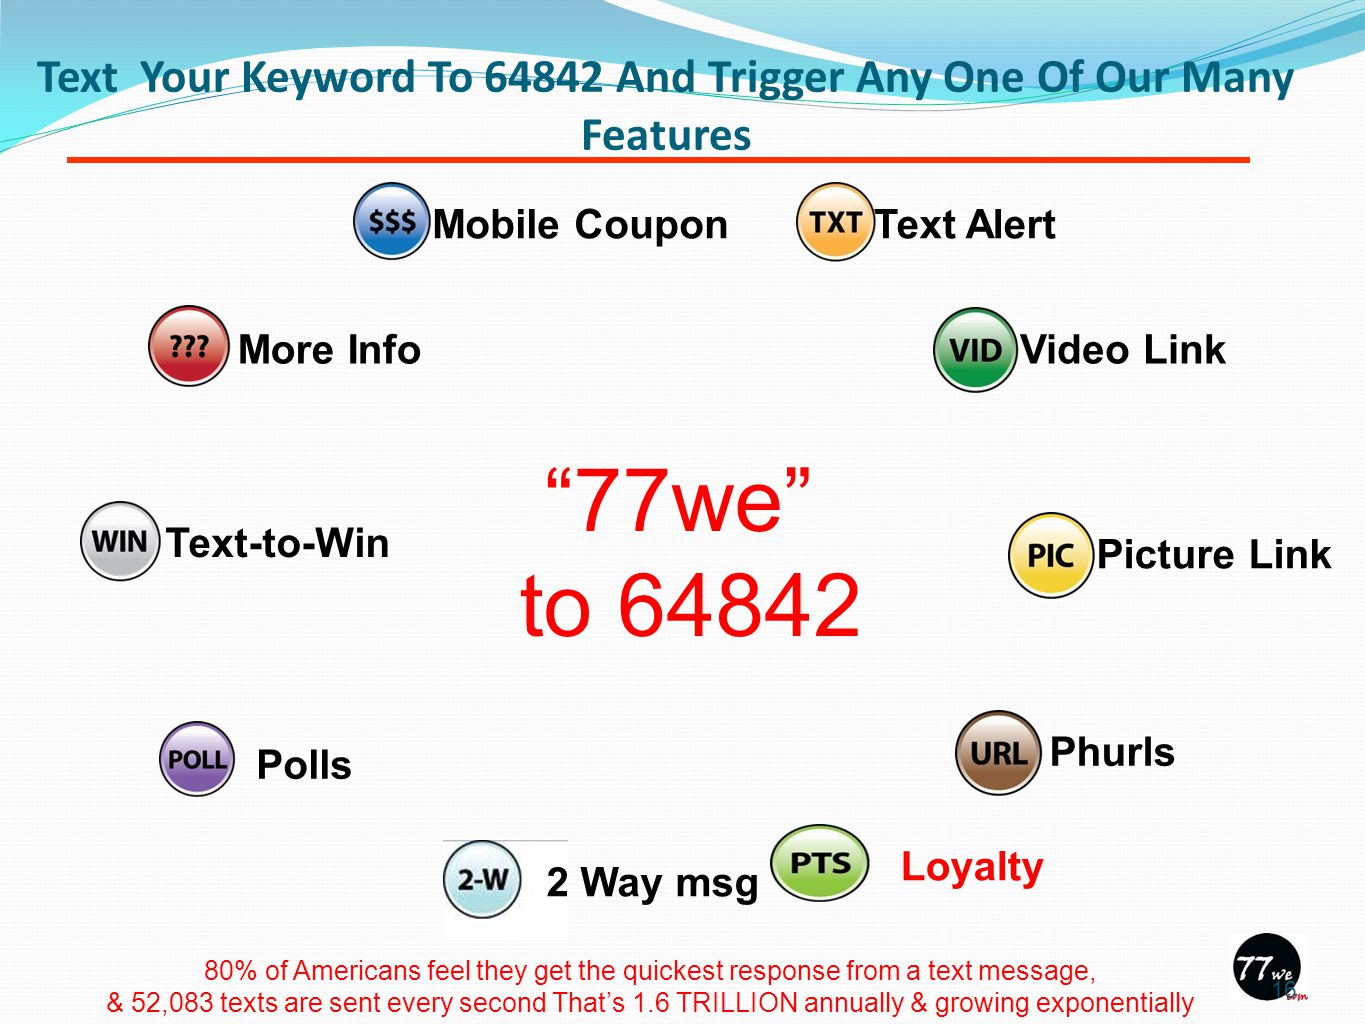 Text Your Keyword To 64842 And Trigger Any One Of Our Many Features Polls Text-to-Win More Info Mobile Coupon Text Alert Video Link Picture LinkPhurls Loyalty 2 Way msg 77we to 64842 80% of Americans feel they get the quickest response from a text message, & 52,083 texts are sent every second That's 1.6 TRILLION annually & growing exponentially 16